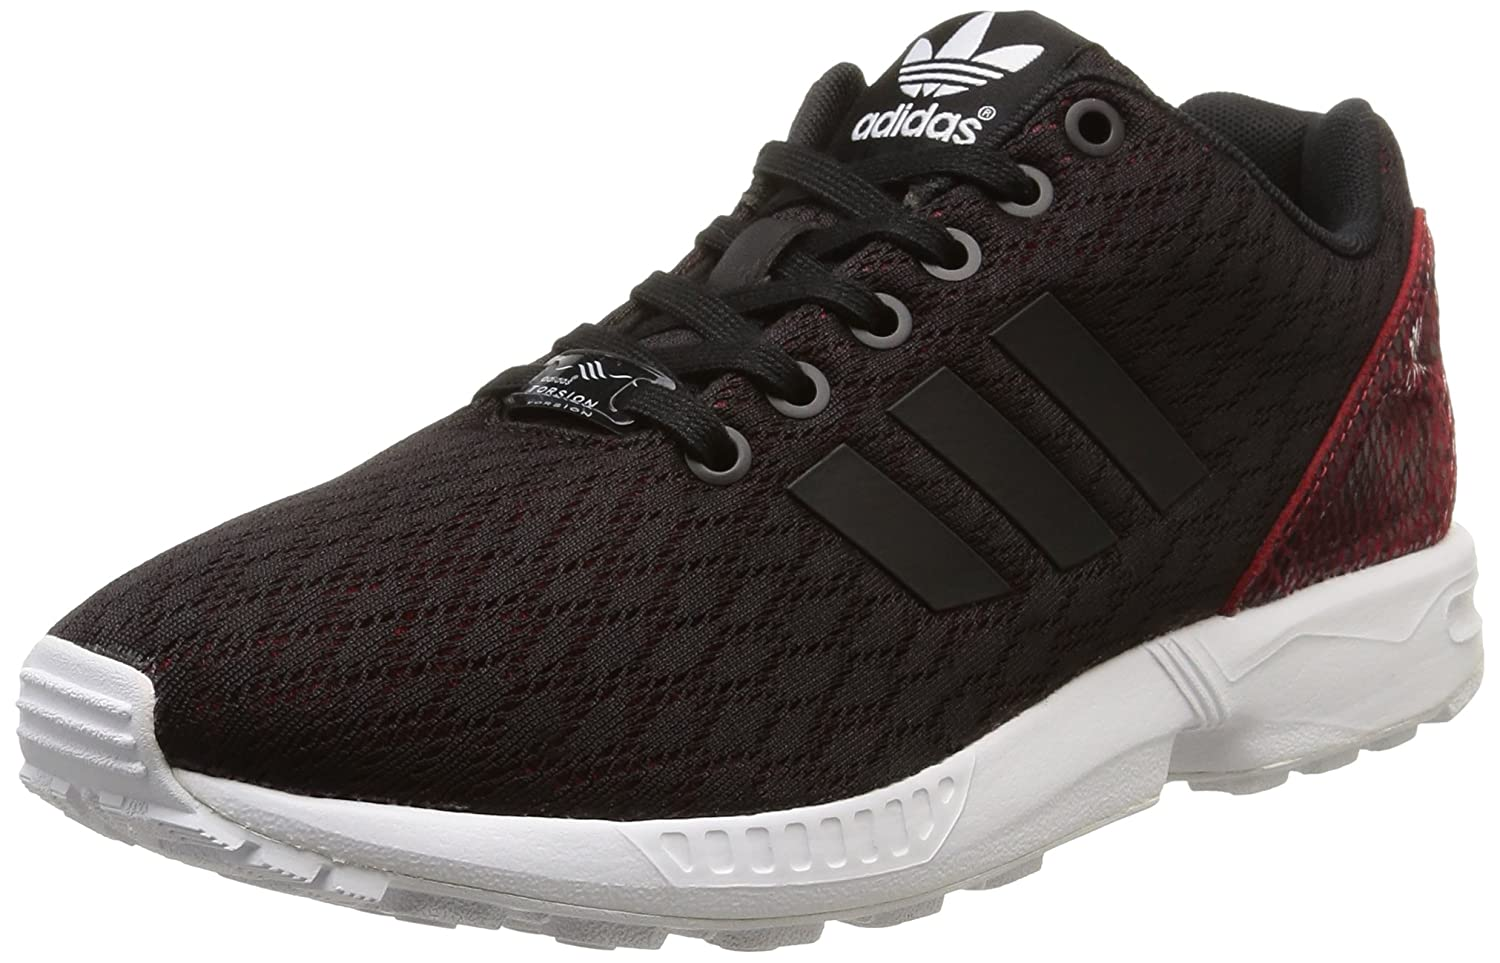 Gentleman/Lady adidas Zx Flux W, W, W, Men's Trainers Durable service Reliable performance negotiation f5005c